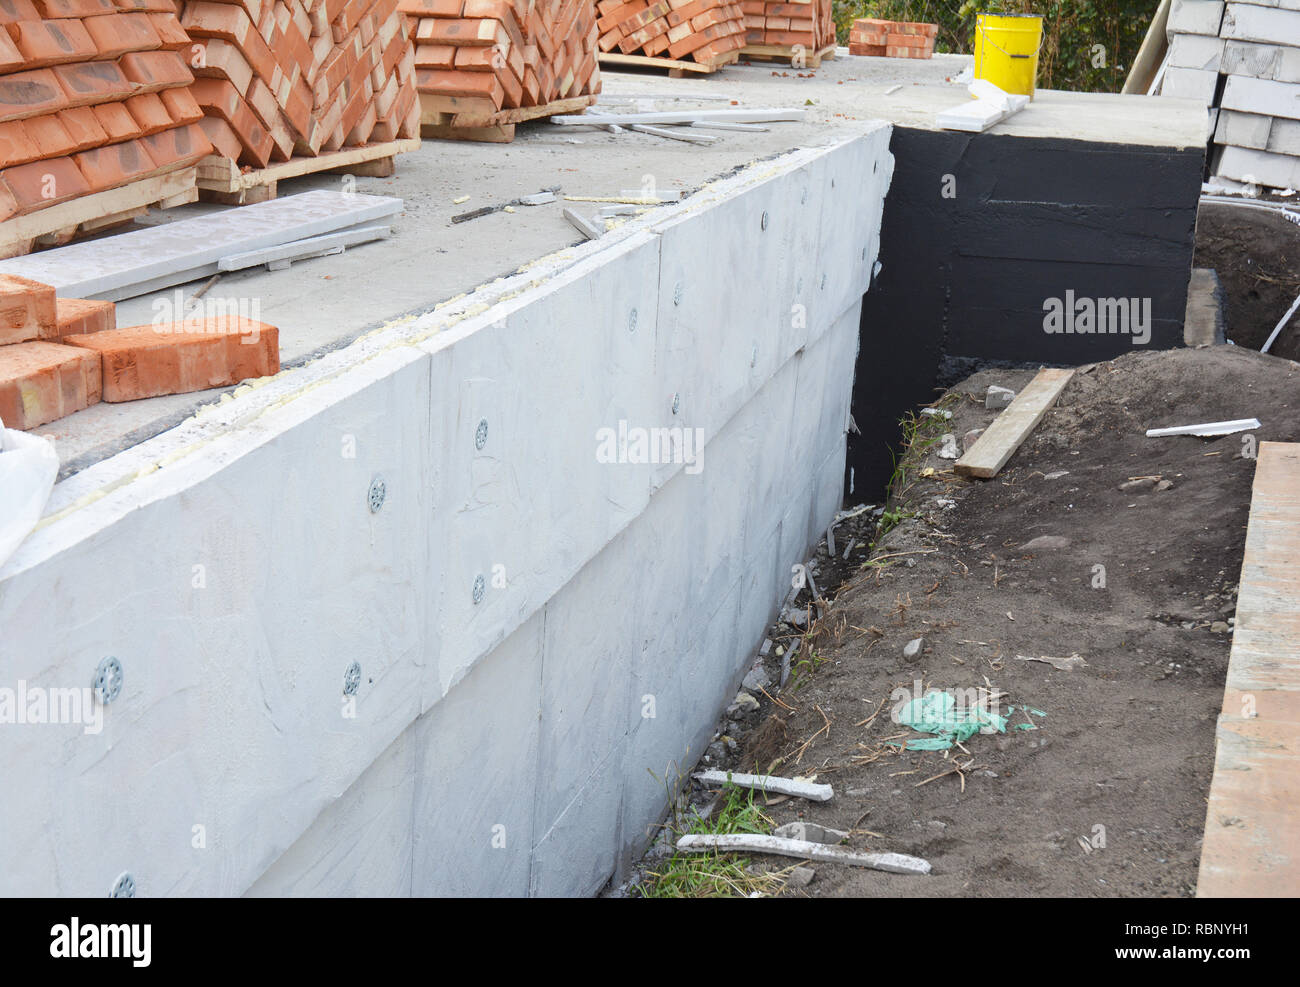 Insulating Exterior Foundation Walls. Foundation Waterproofing and Damp proofing Coatings. Waterproofing house foundation with spray on tar with insul - Stock Image